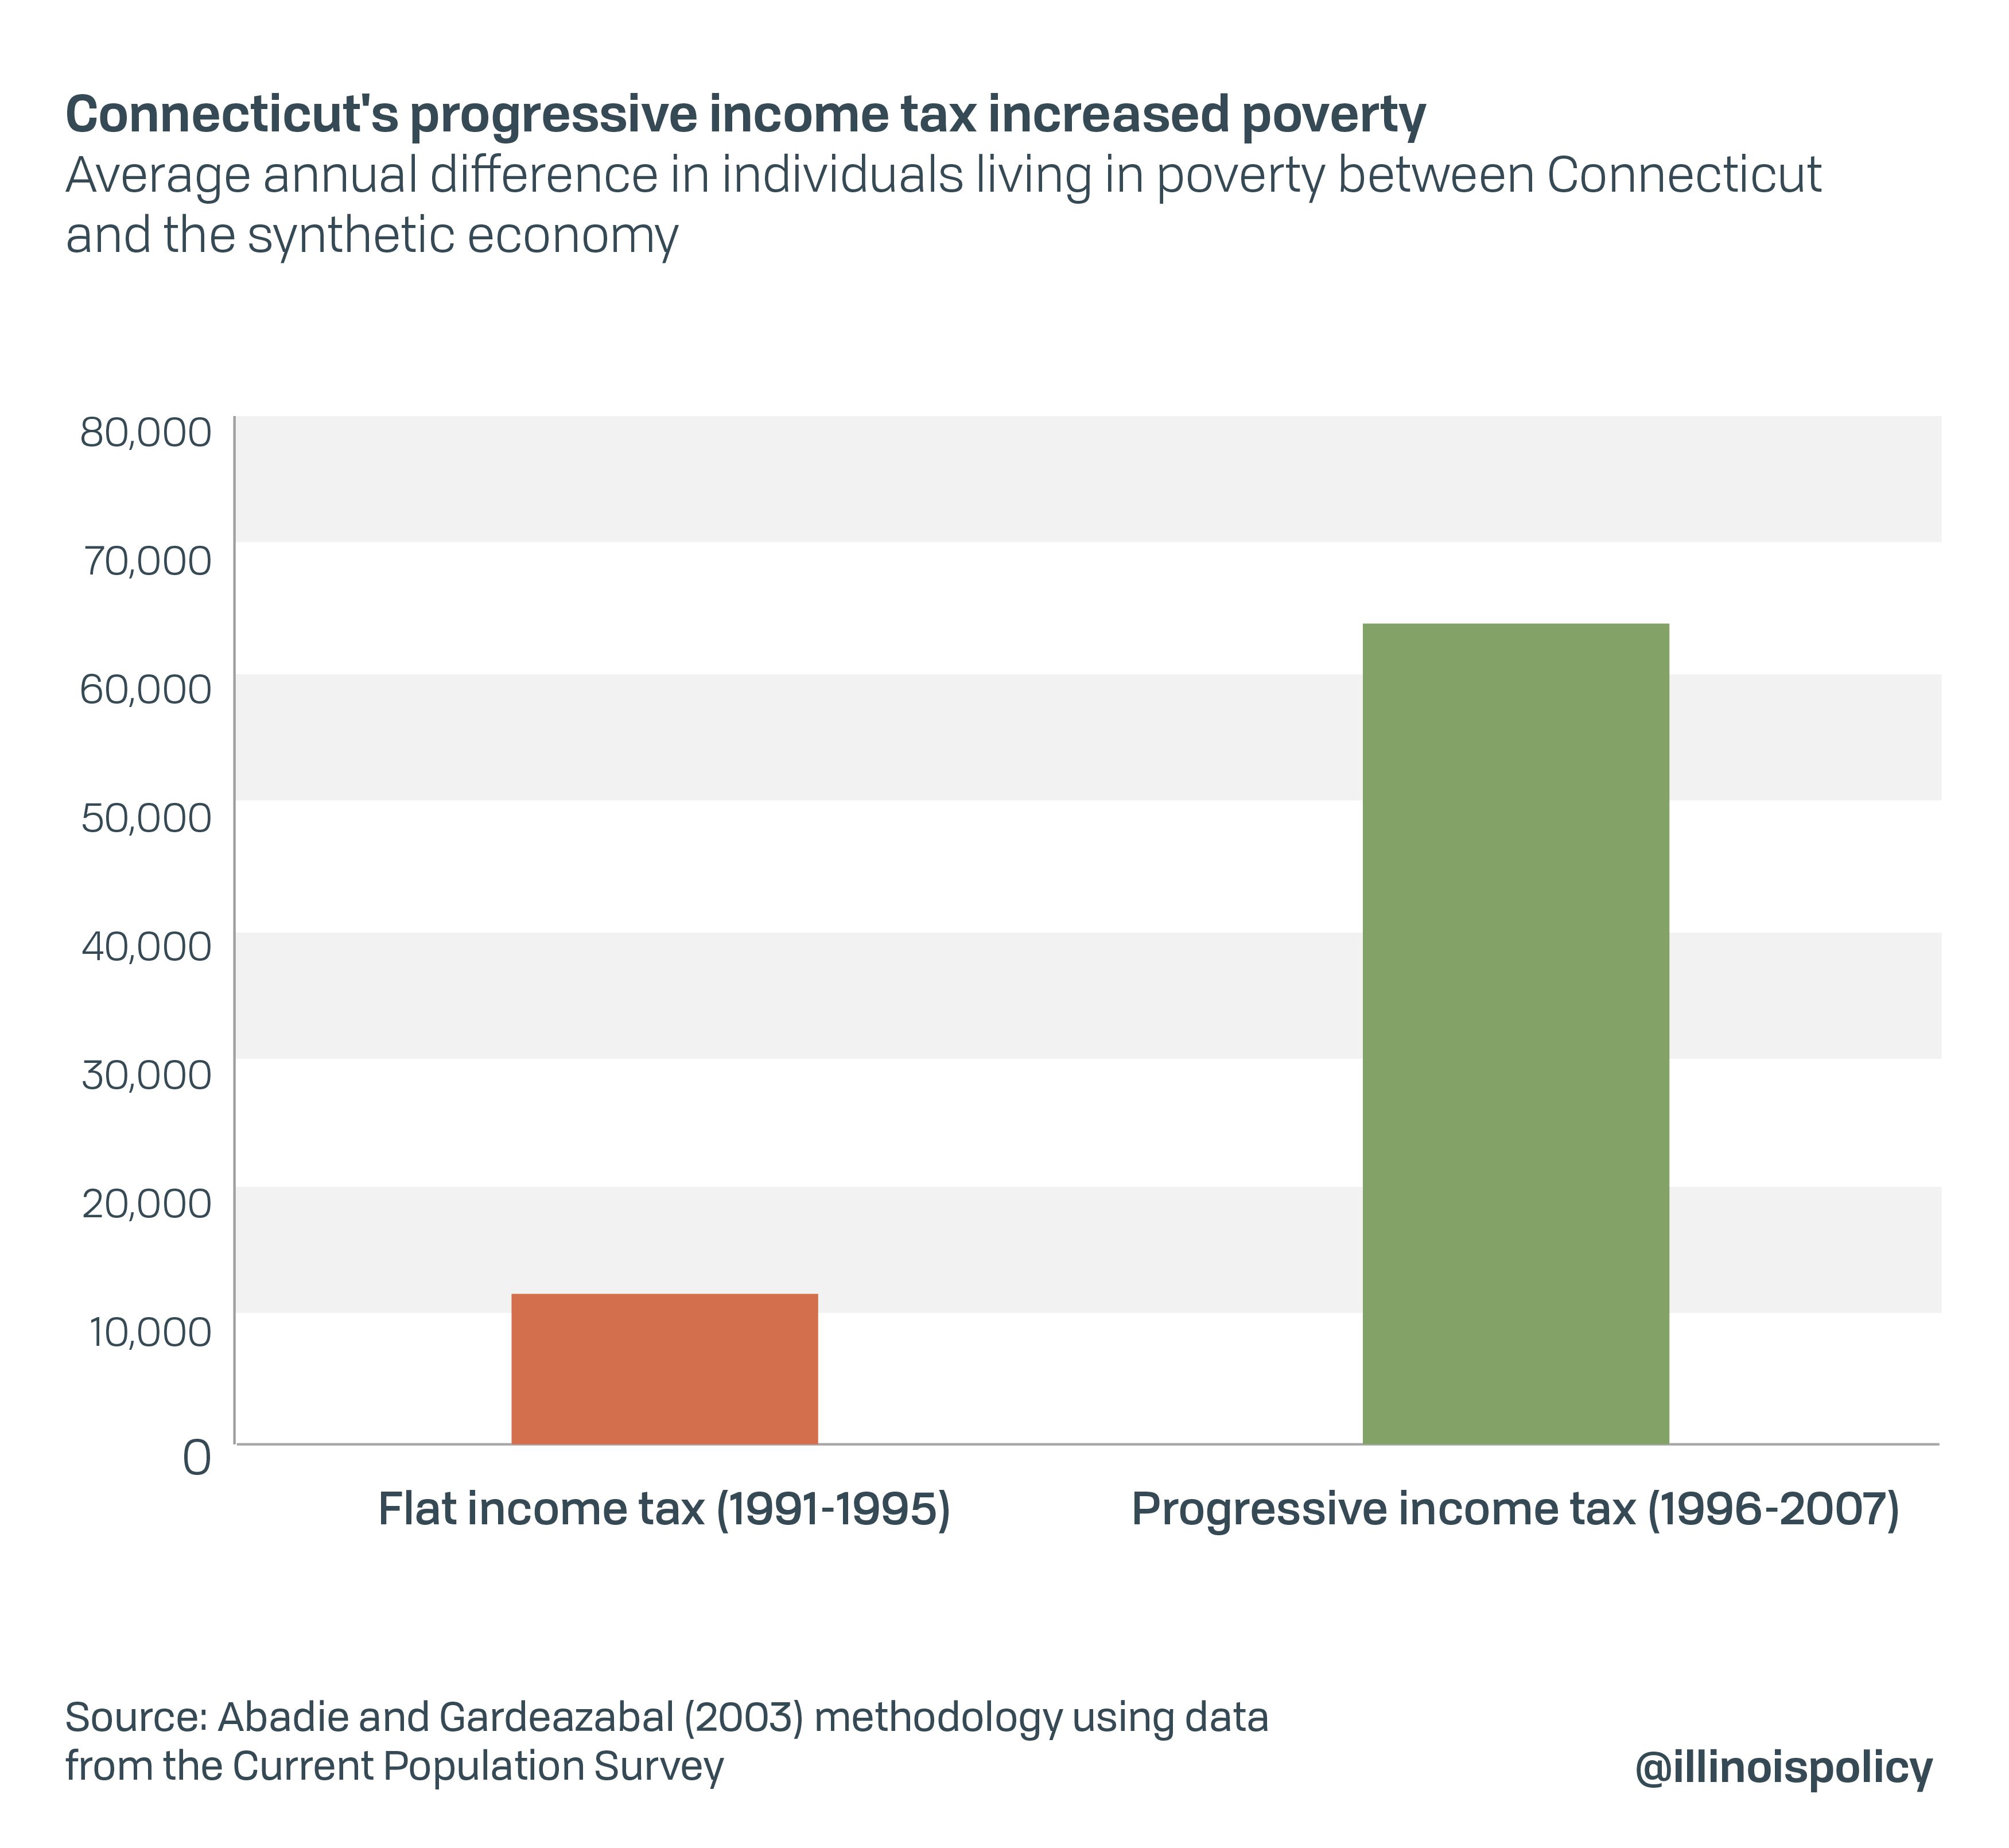 Connecticut's progressive income tax increased poverty